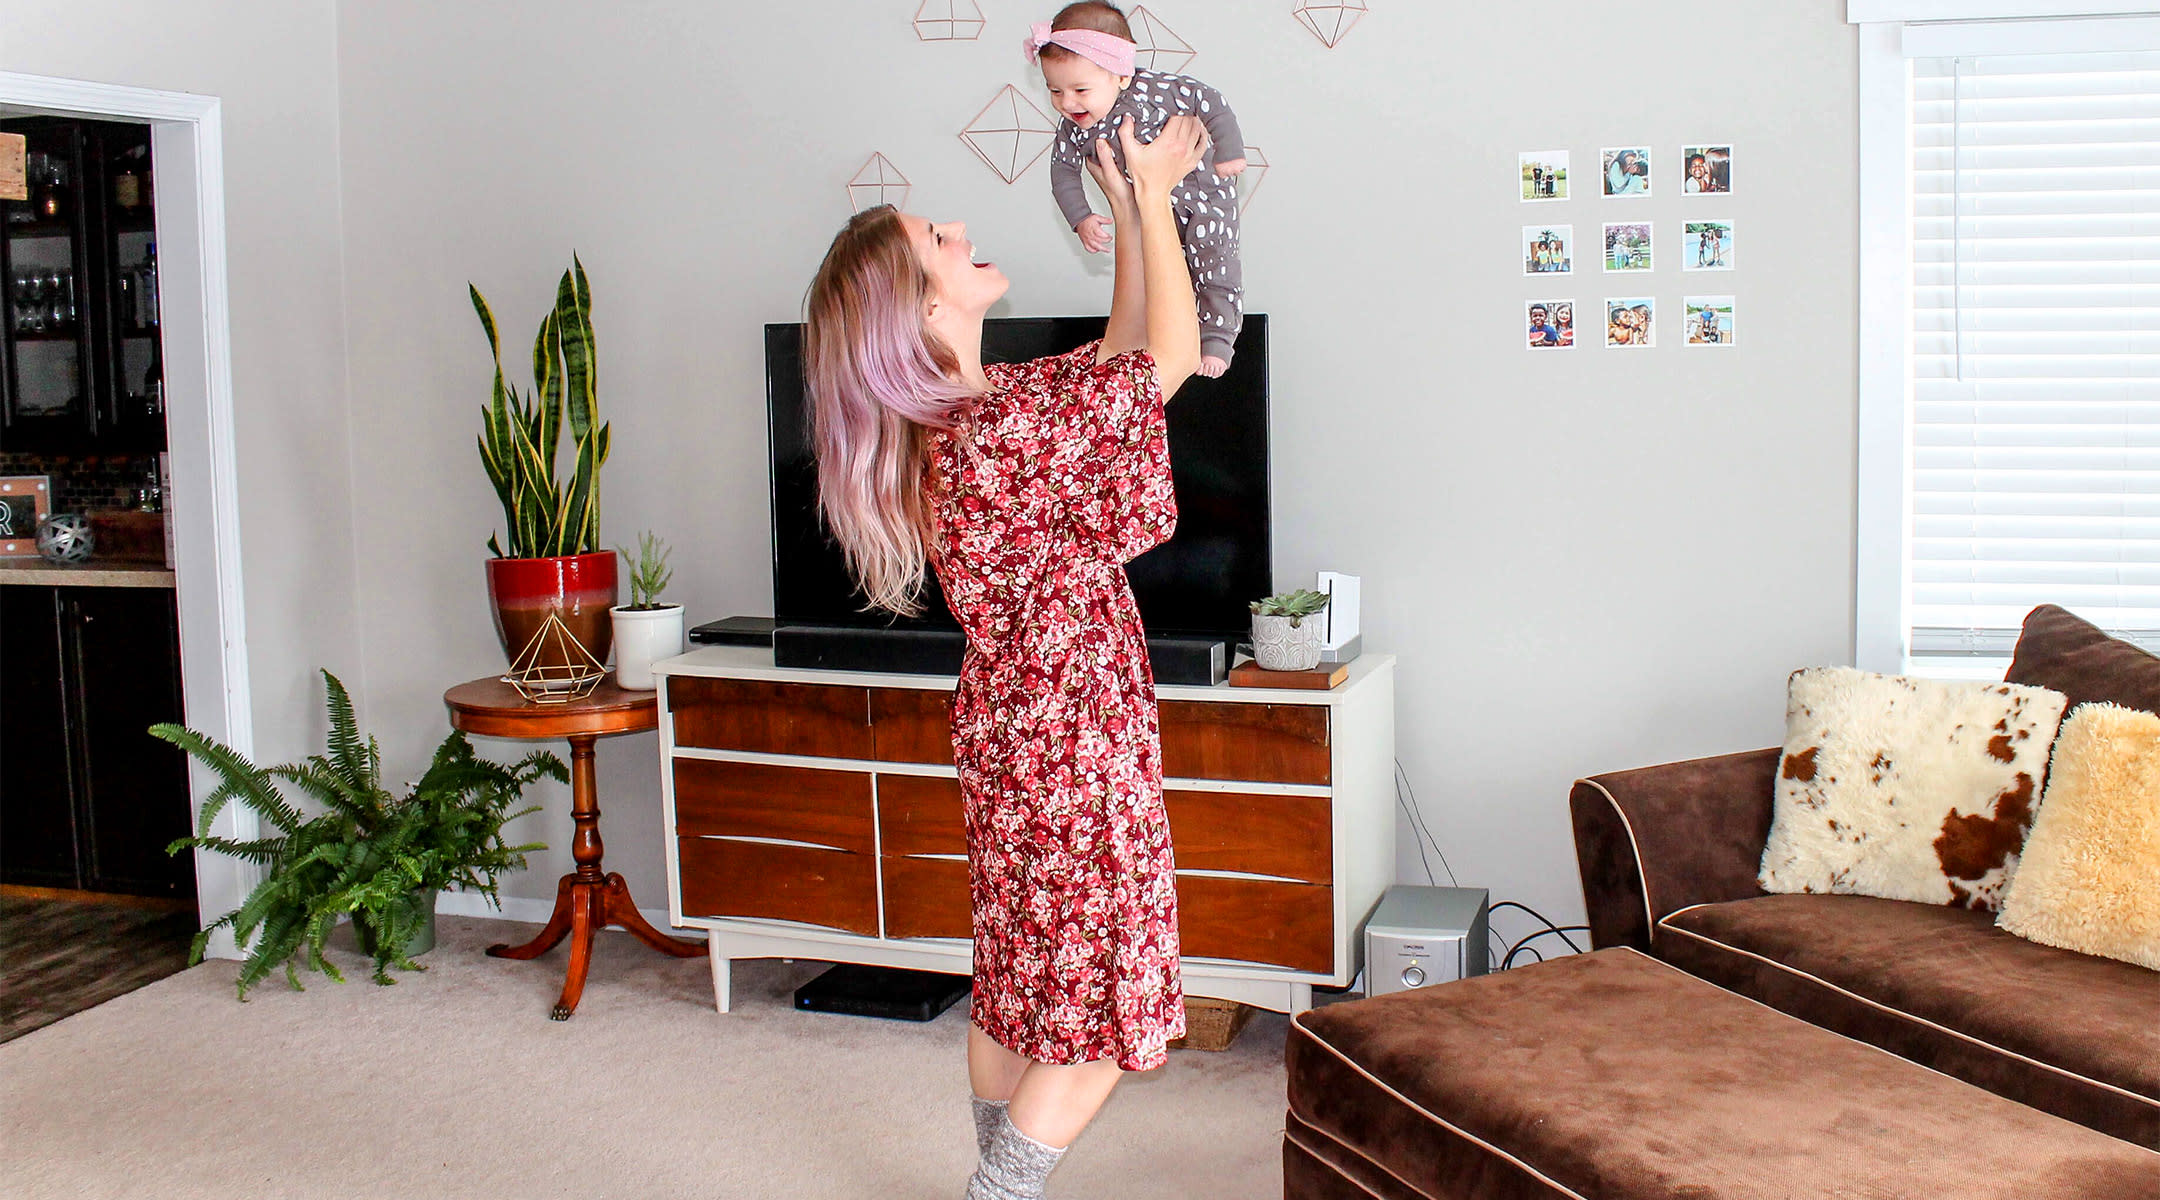 happy mom lifting up baby and singing to her